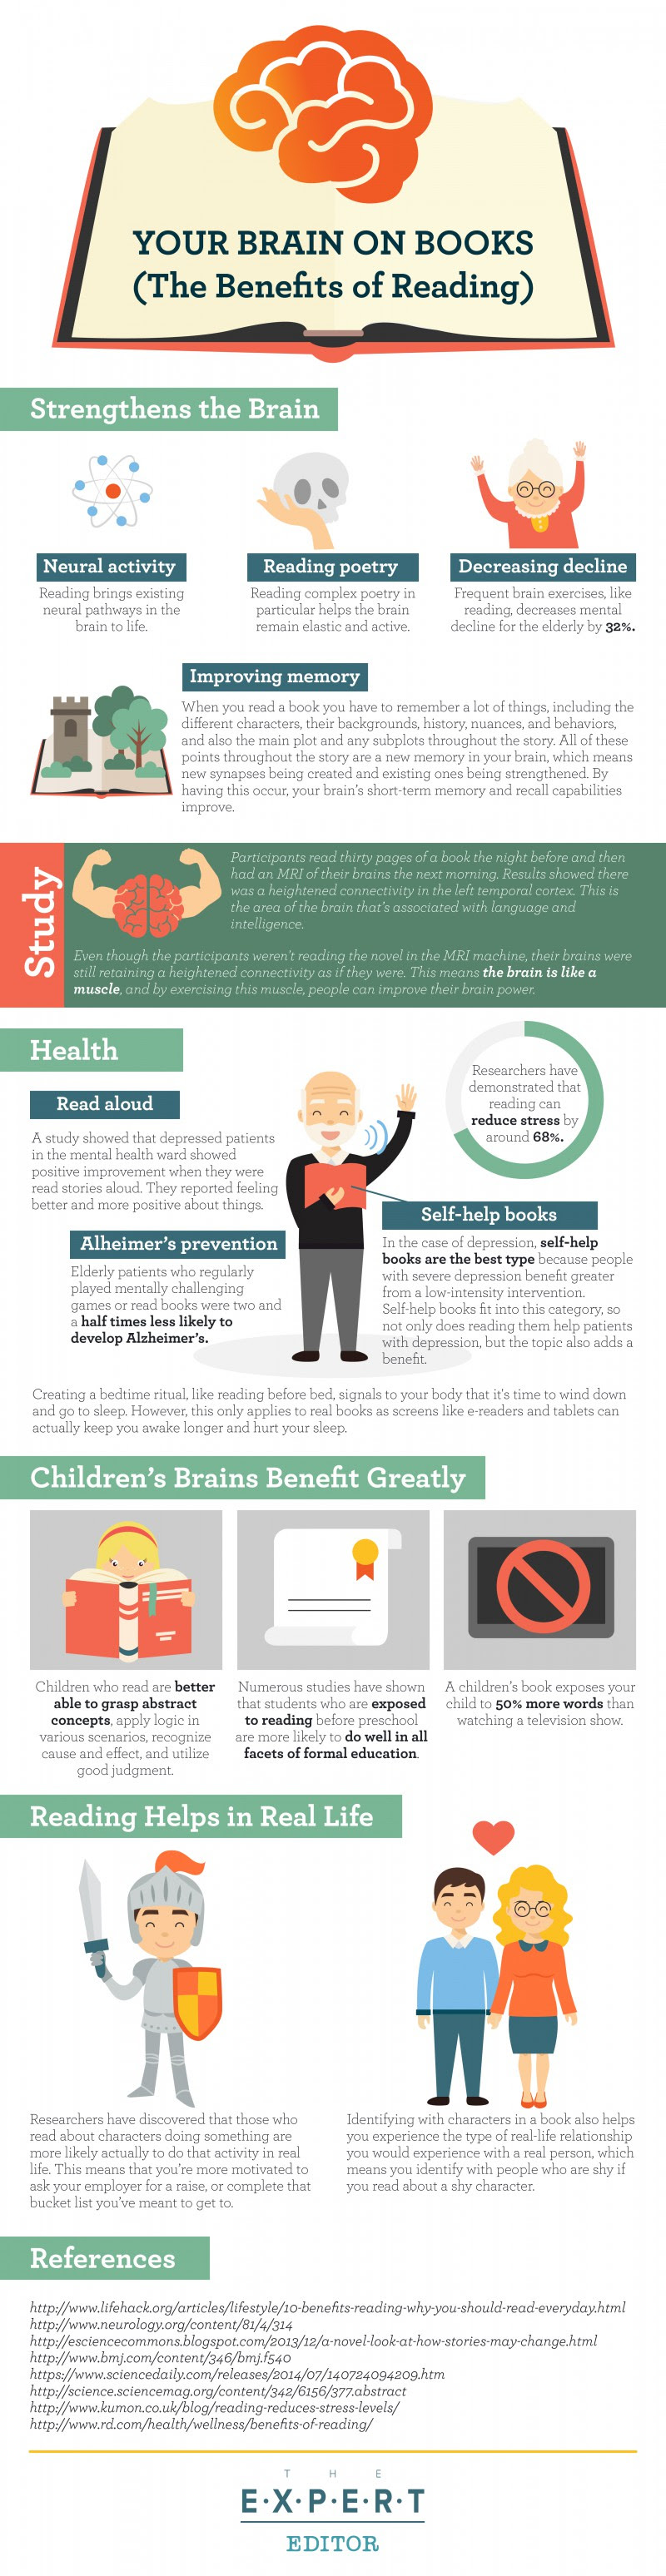 Your Brain on Books: The Benefits of Reading